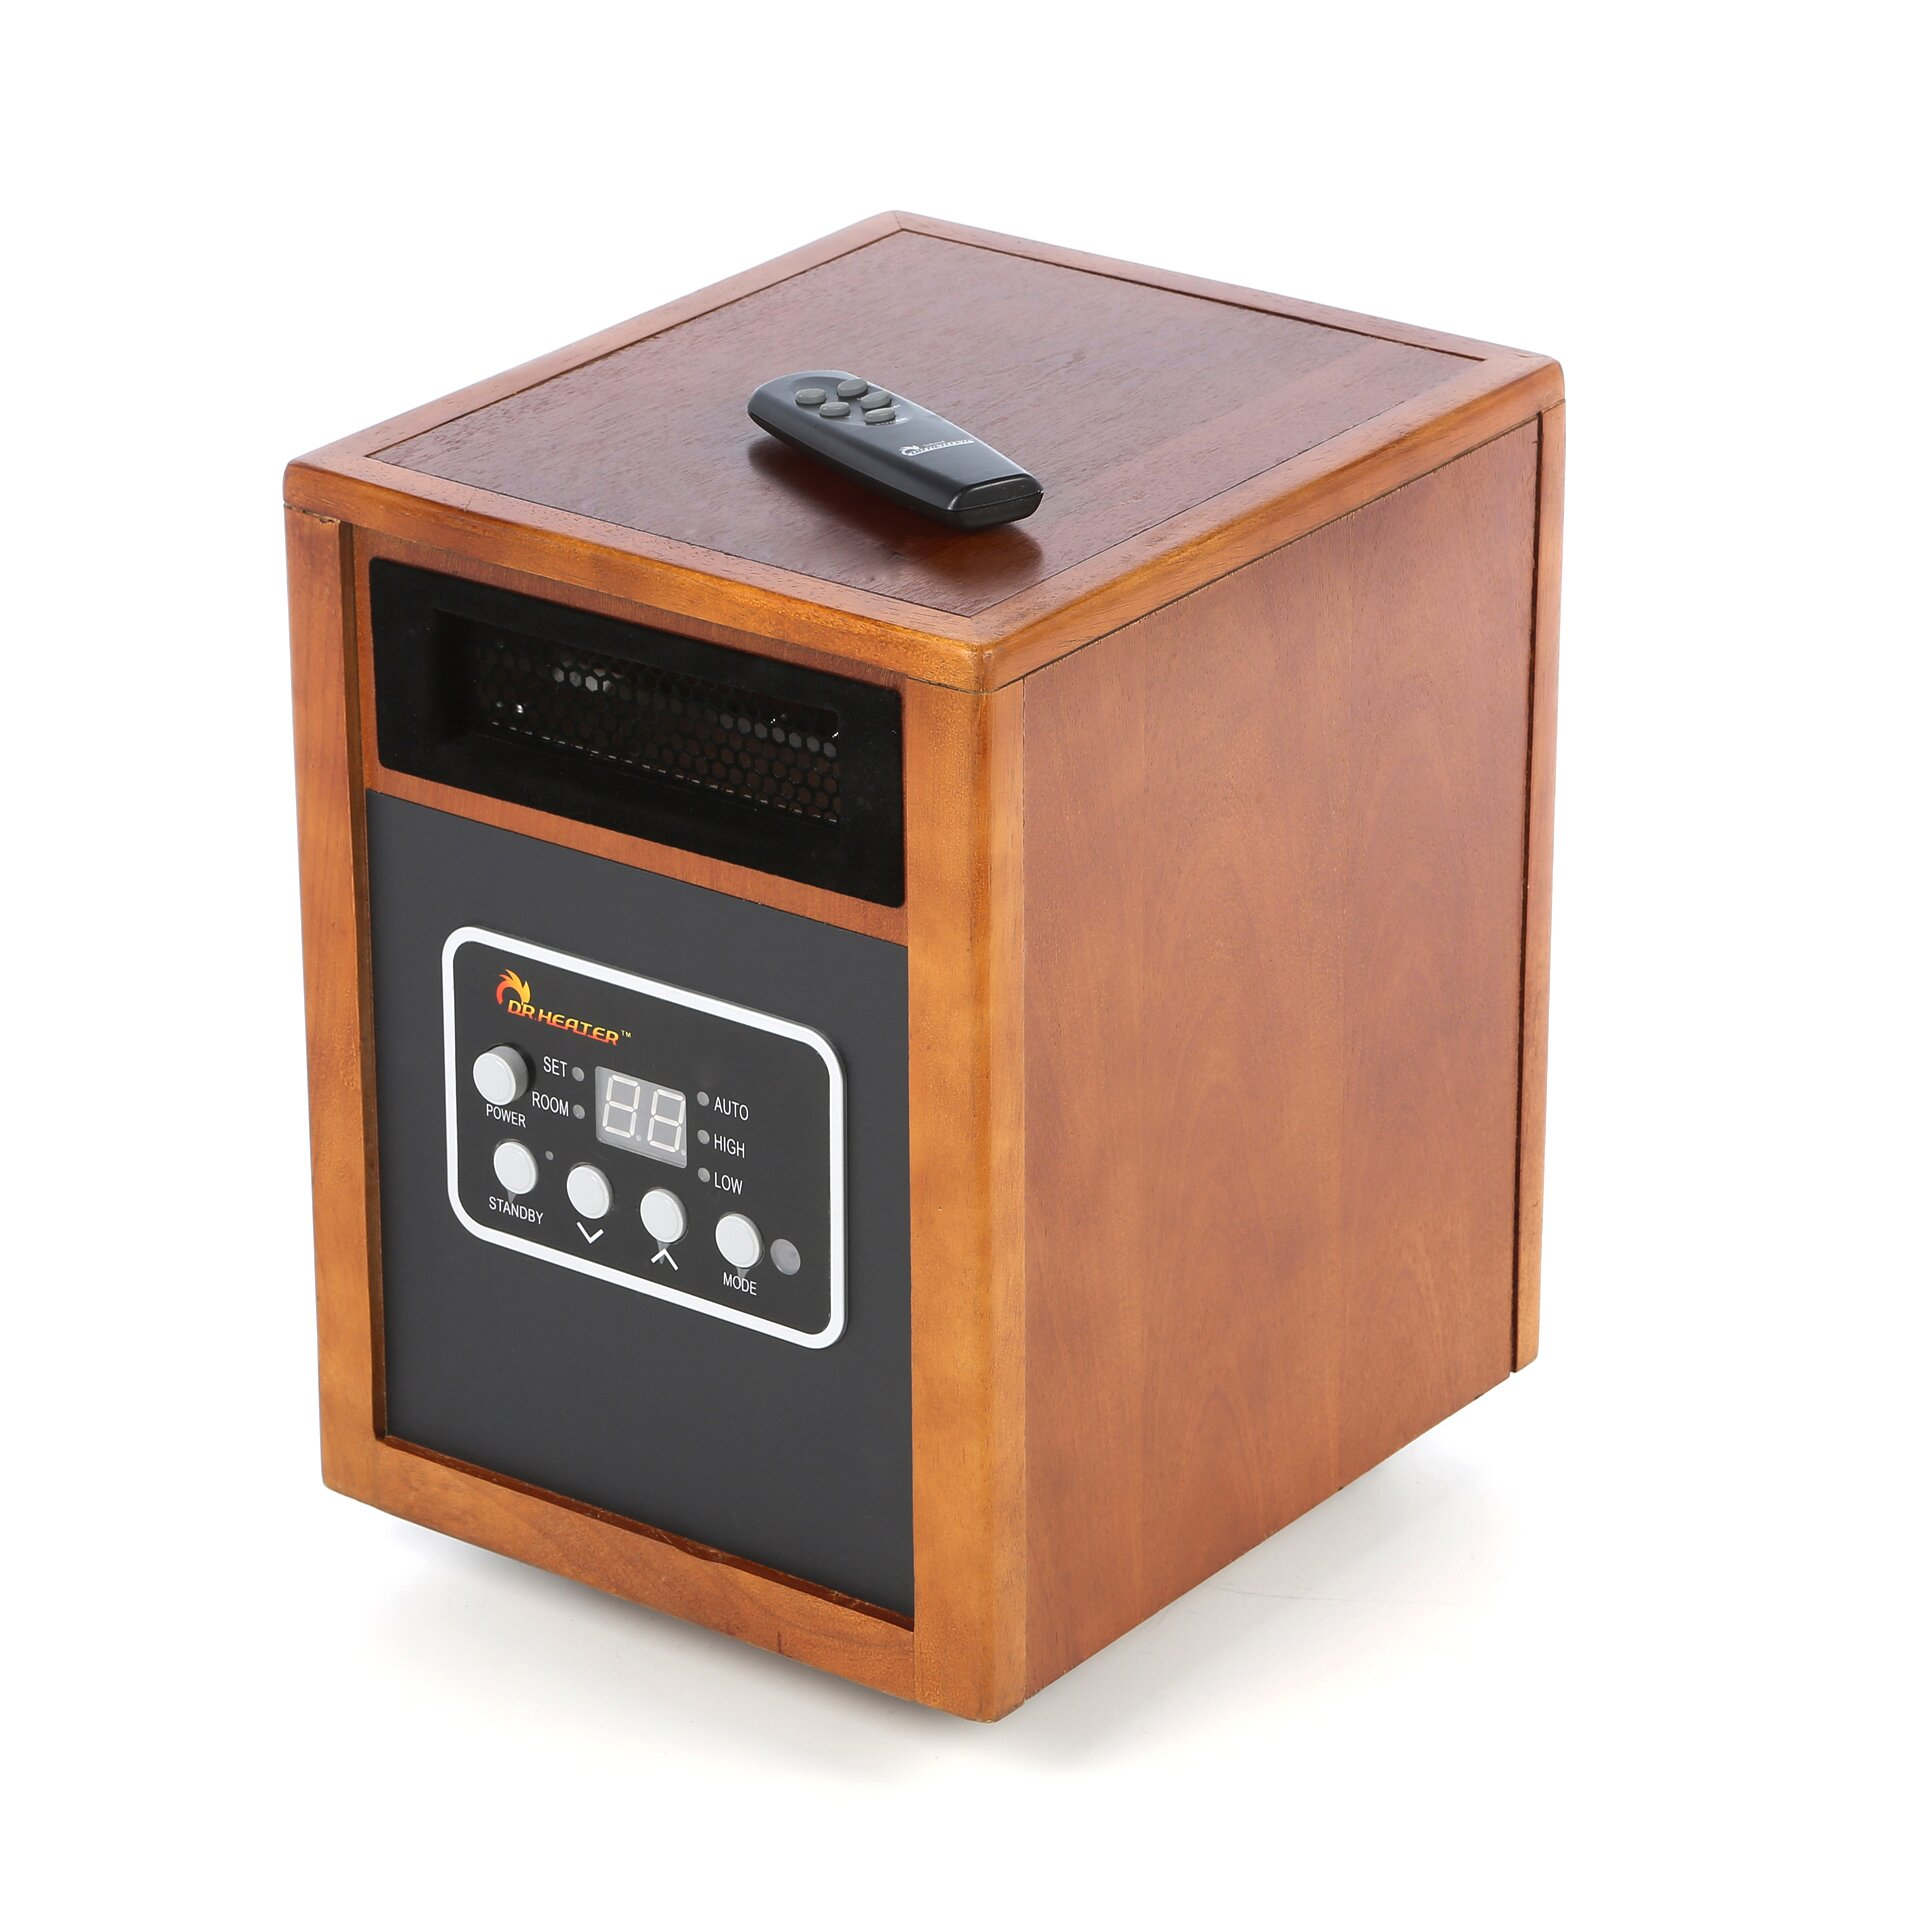 Dr infrared heater 1 500 watt portable electric infrared Dr infrared heater